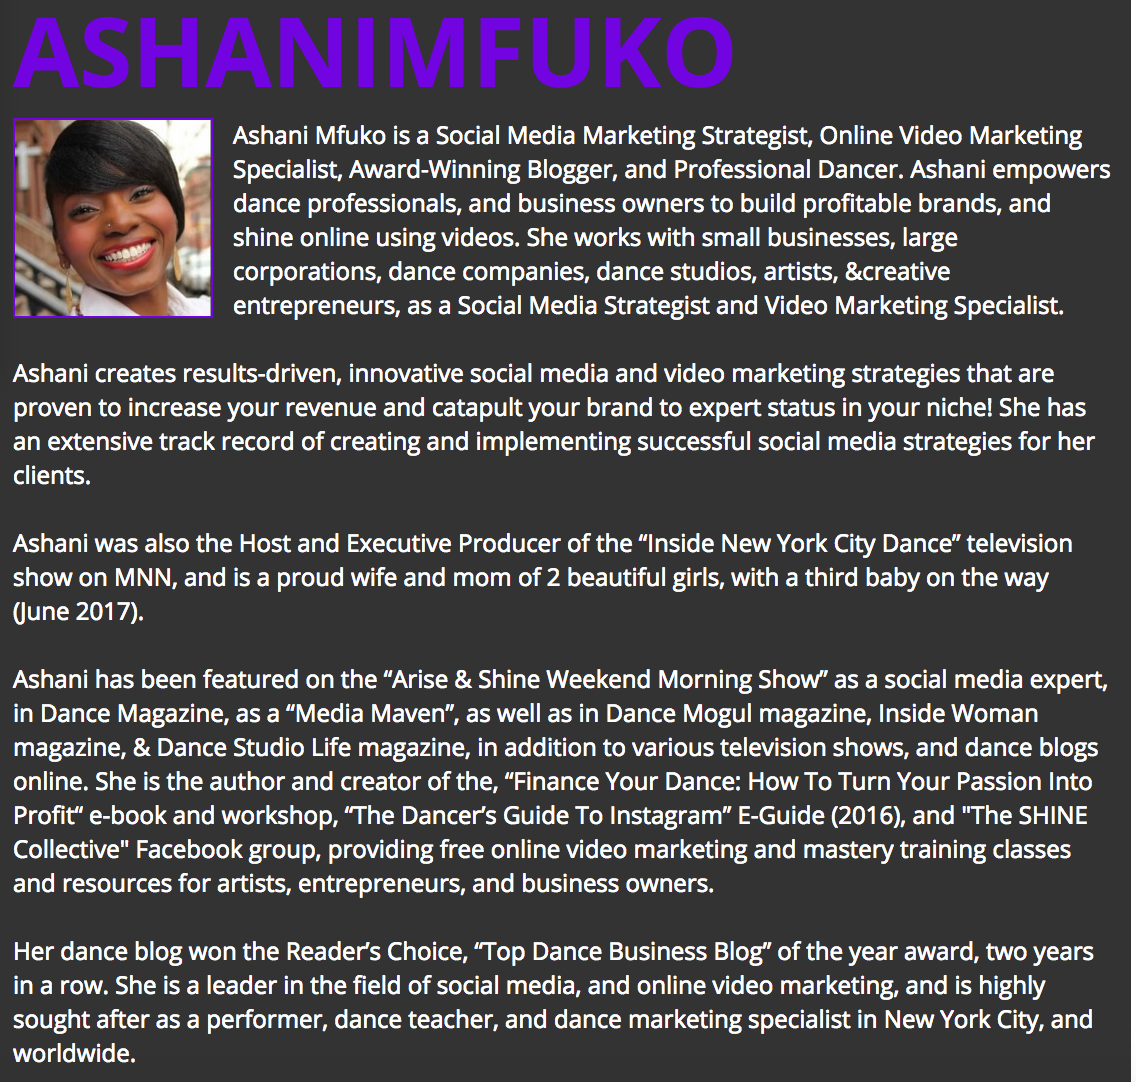 Meet Ashani Mfuko - Social Media Strategist, Video Marketing Specialist